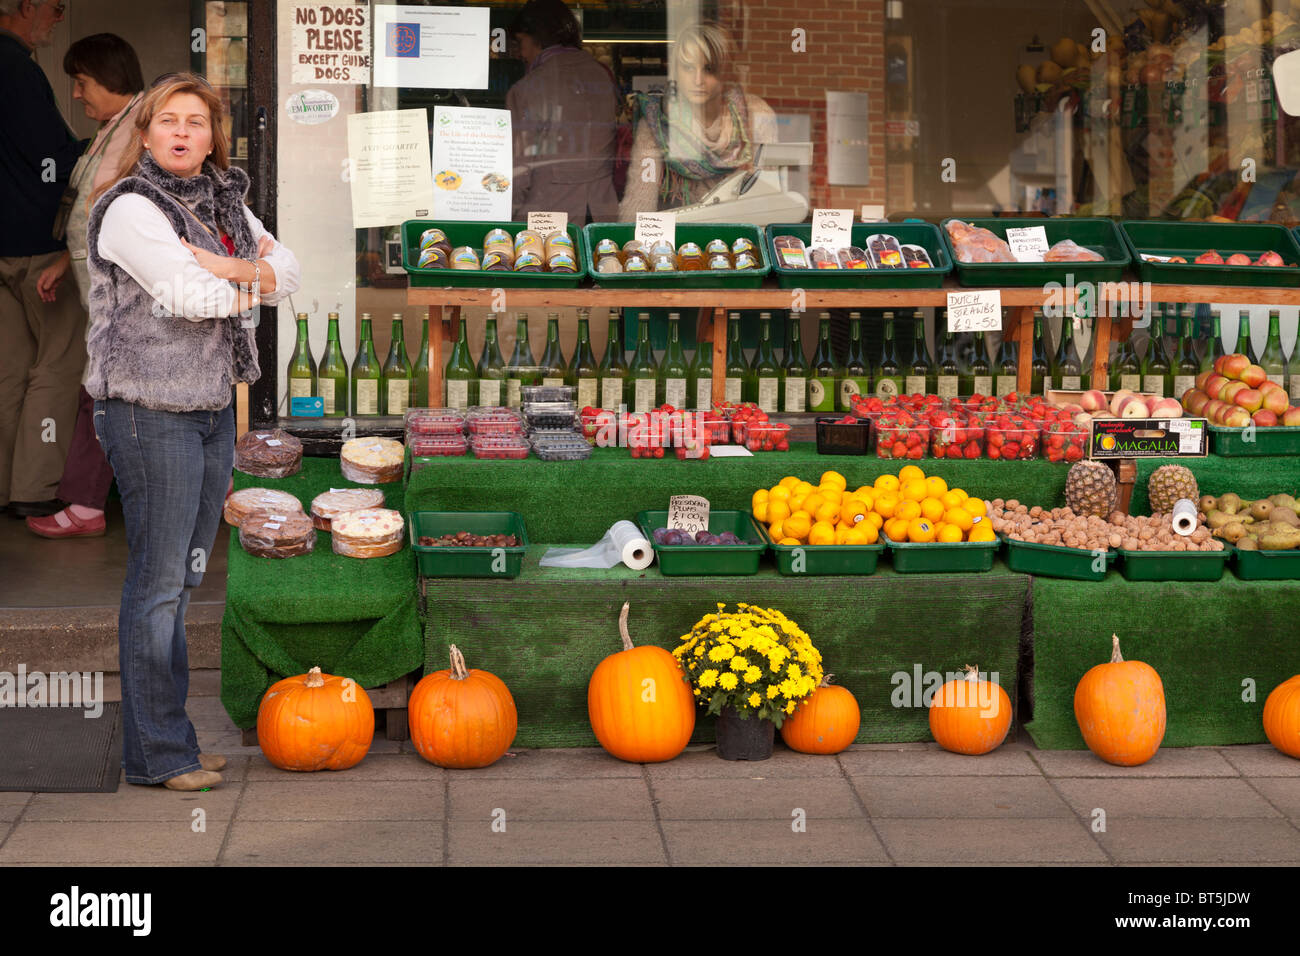 Outside of green grocers with display of pumpkins - Stock Image